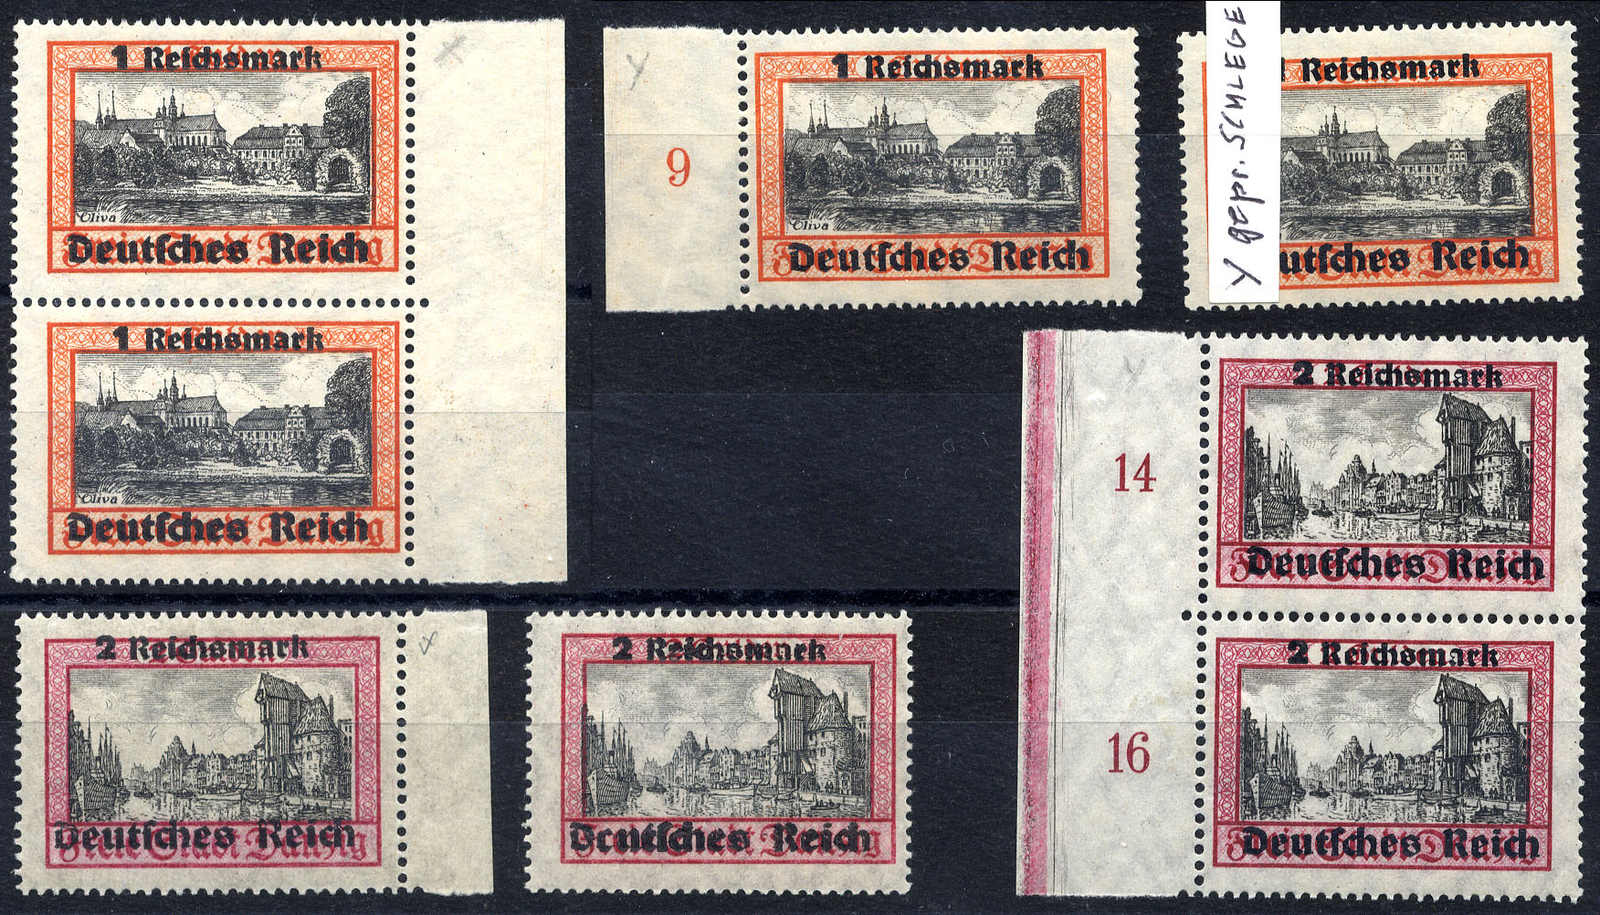 Lot 2912 - germany German Empire -  Viennafil Auktionen 63rd LIVE AUCTION